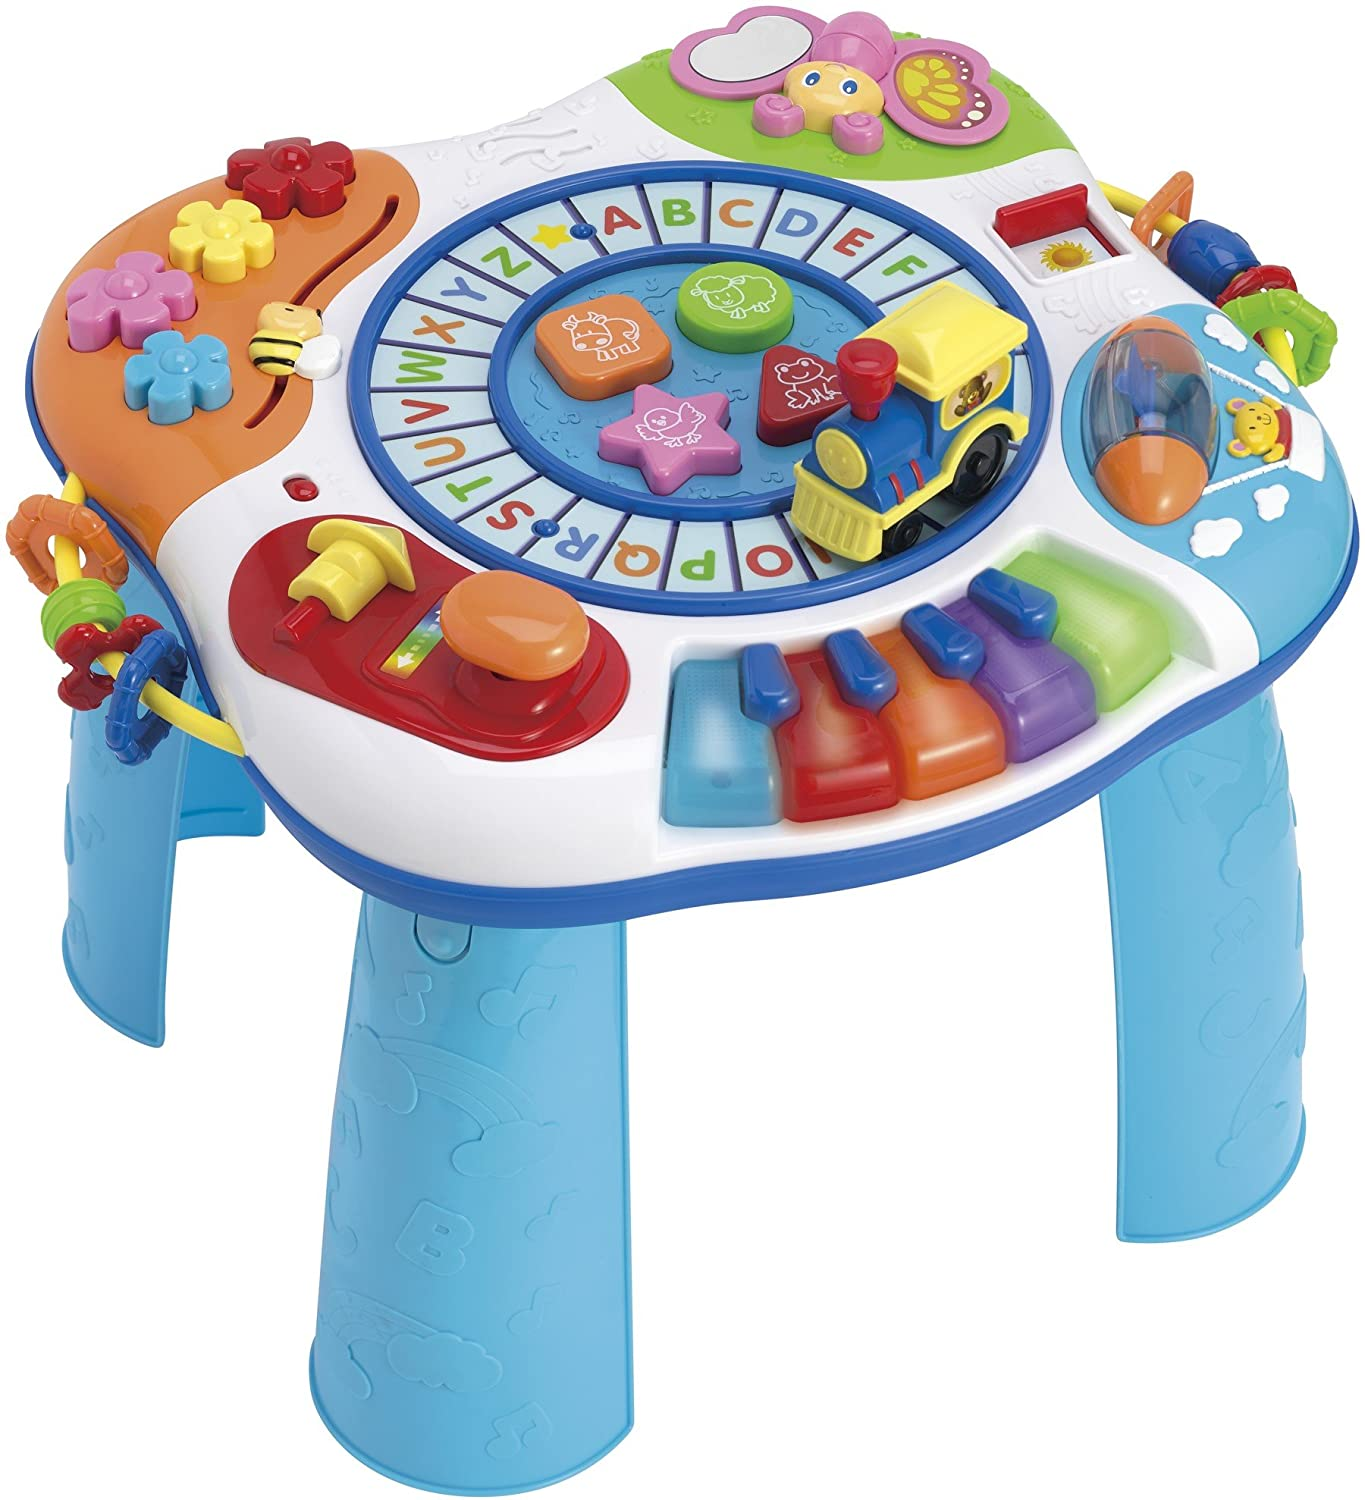 table and baby musical train free desk piano shipping discovering activity learning item letter